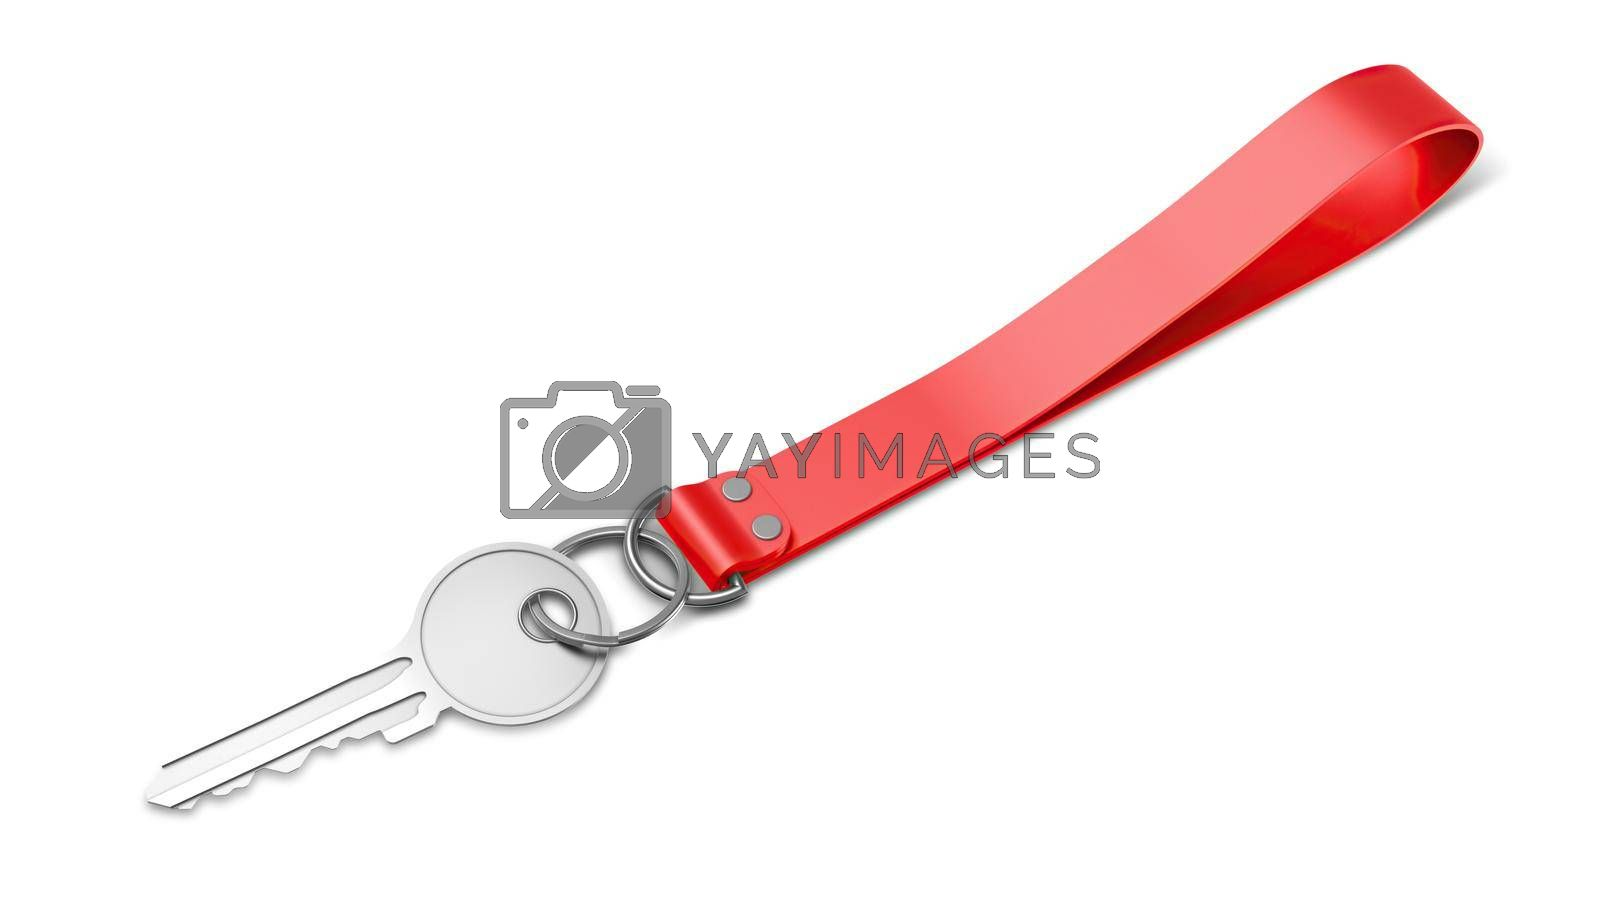 Plastic Keychain Mockup With Key Perspective View